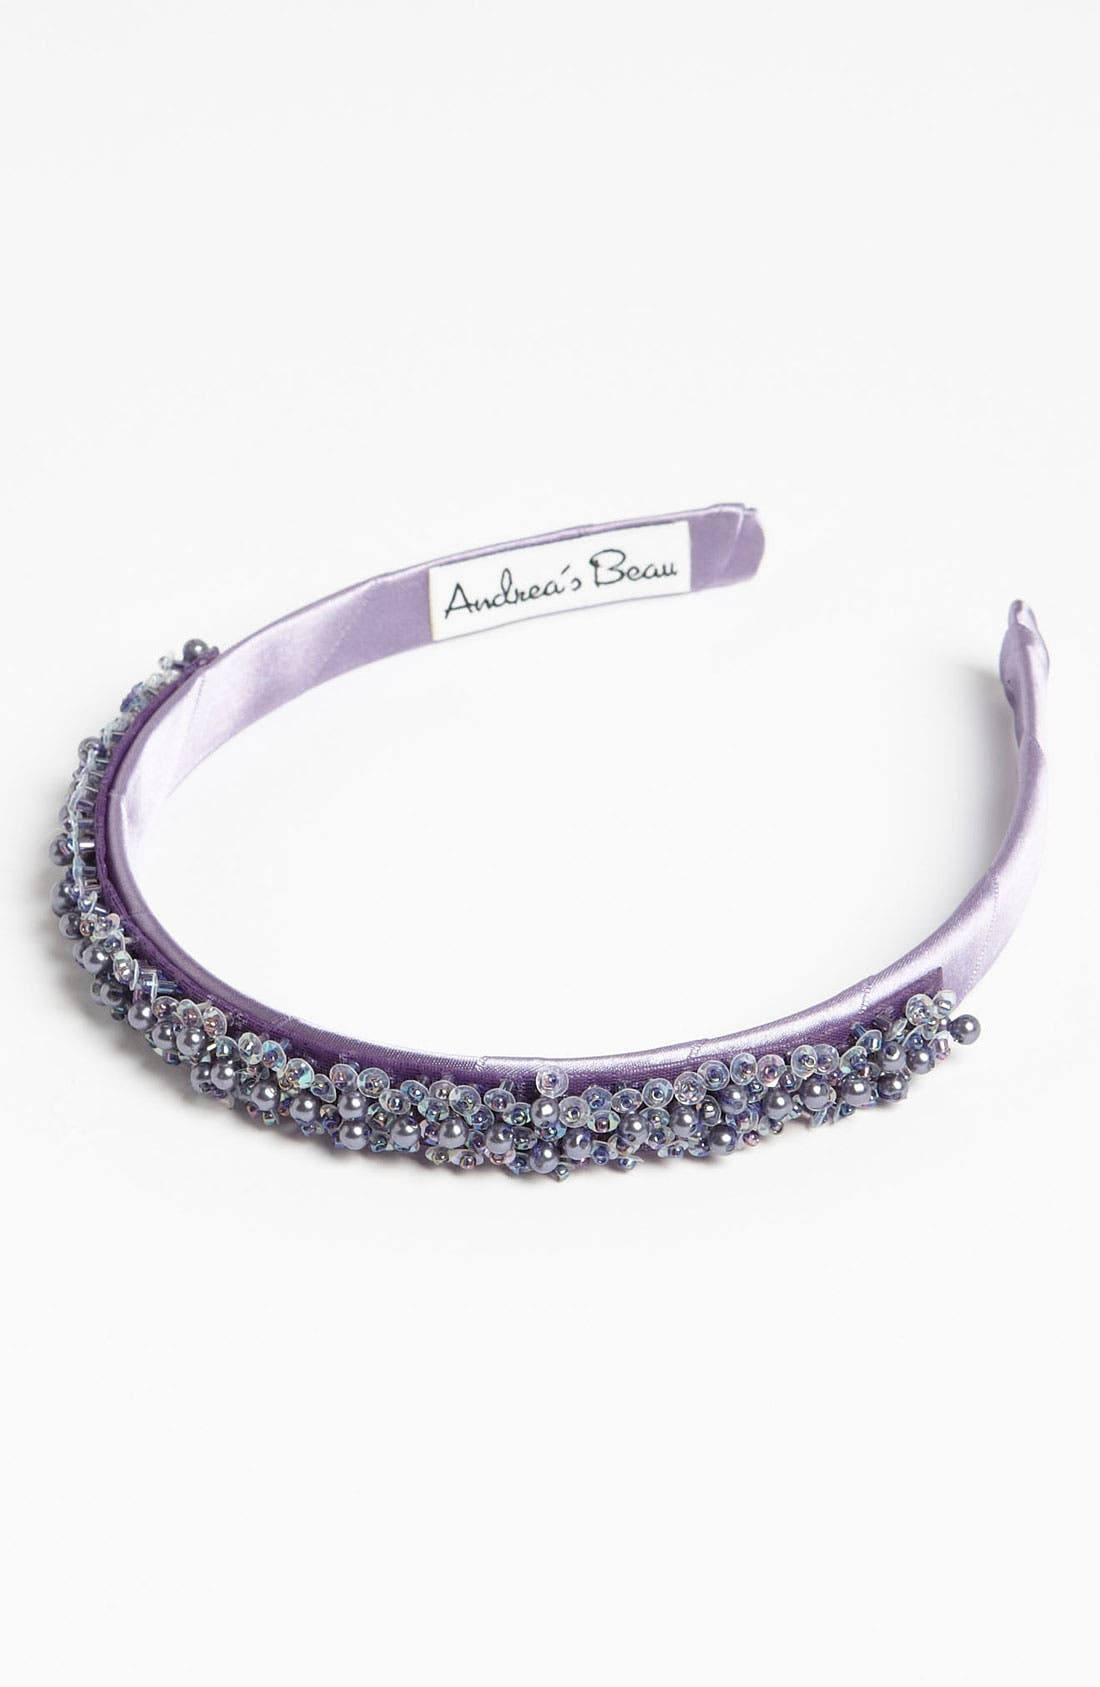 Alternate Image 1 Selected - Andrea's Beau Beaded Headband (Girls)